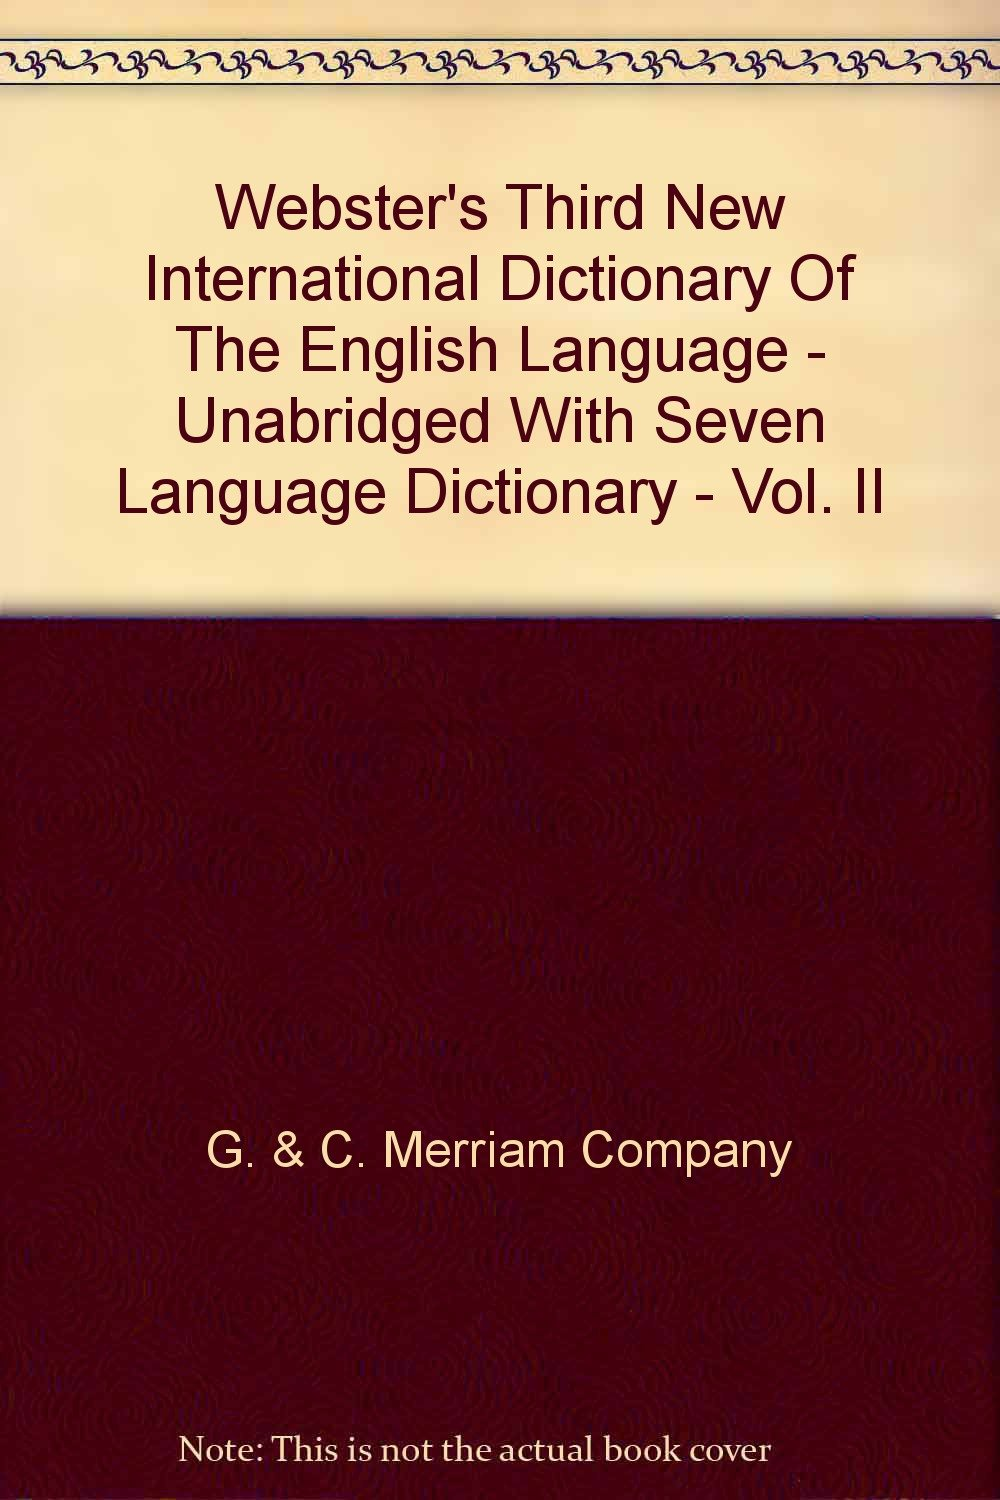 Webster's Third New International Dictionary Of The English Language -  Unabridged With Seven Language Dictionary - Vol. II: G. & C. Merriam  Company: ...